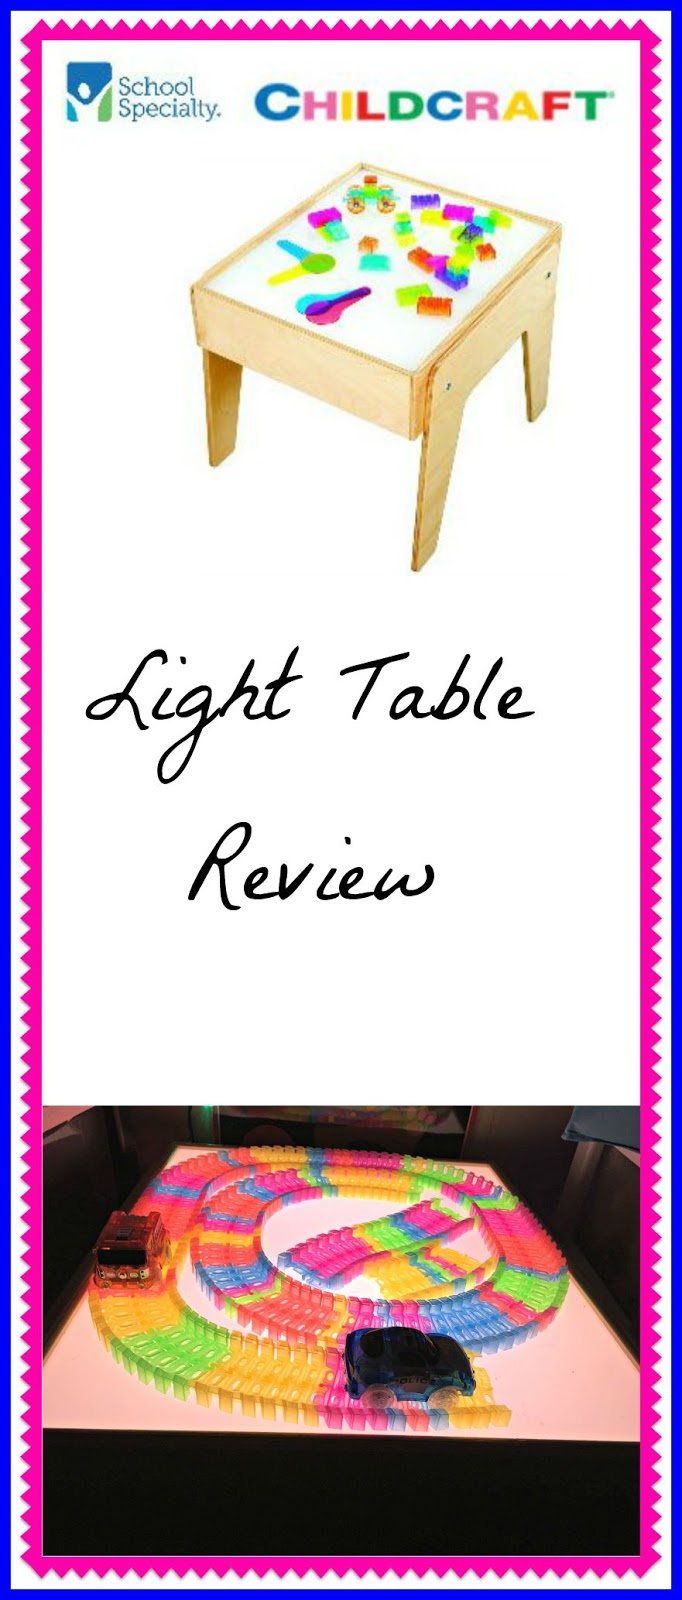 Child craft light table - Childcraft Light Table Review